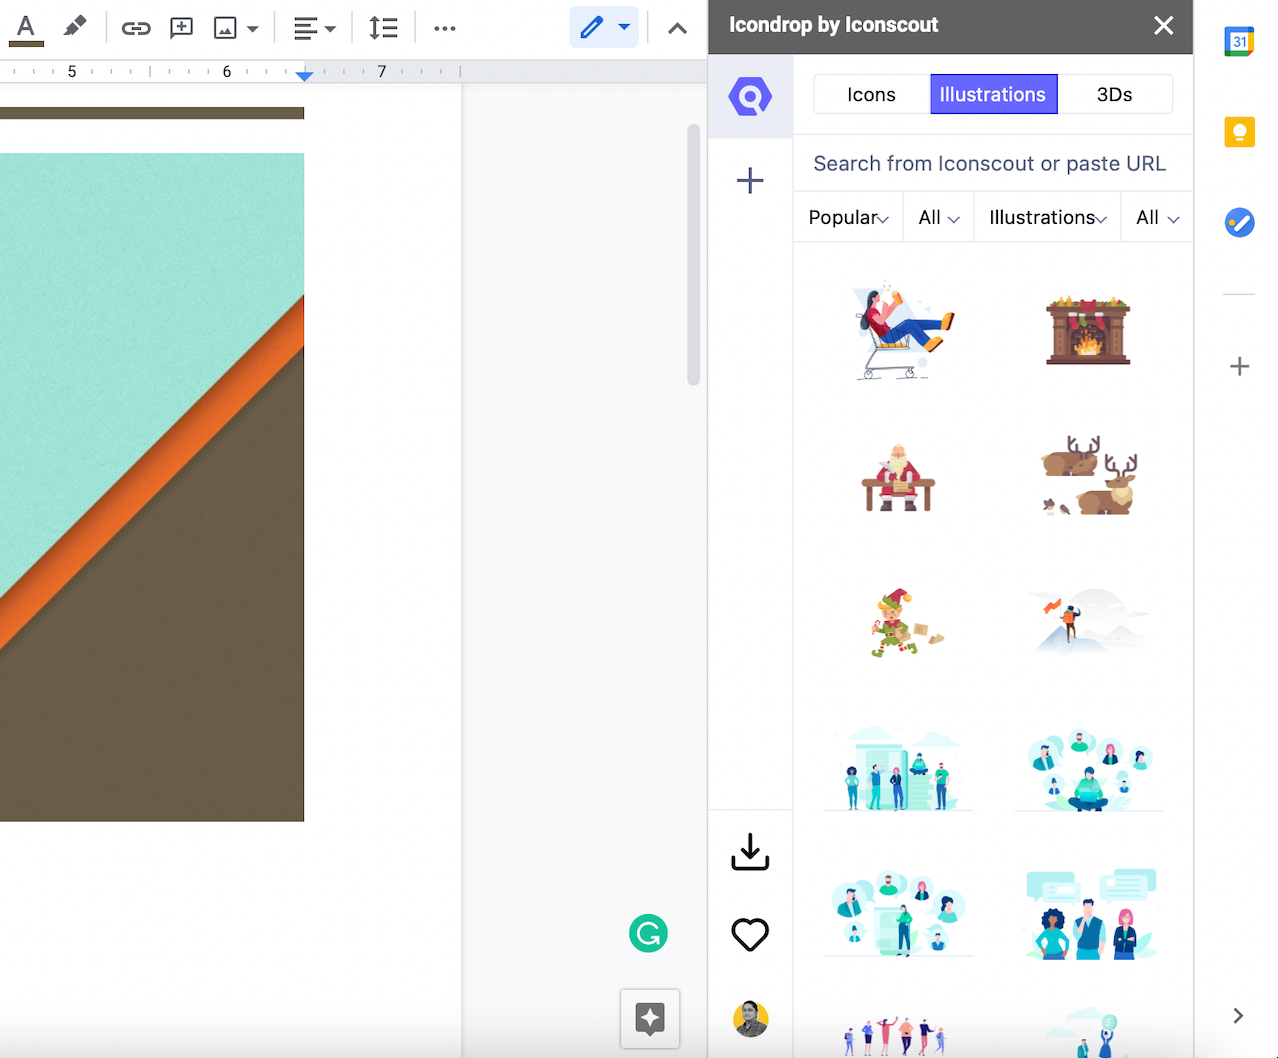 Illustrations in Iconscout plugin